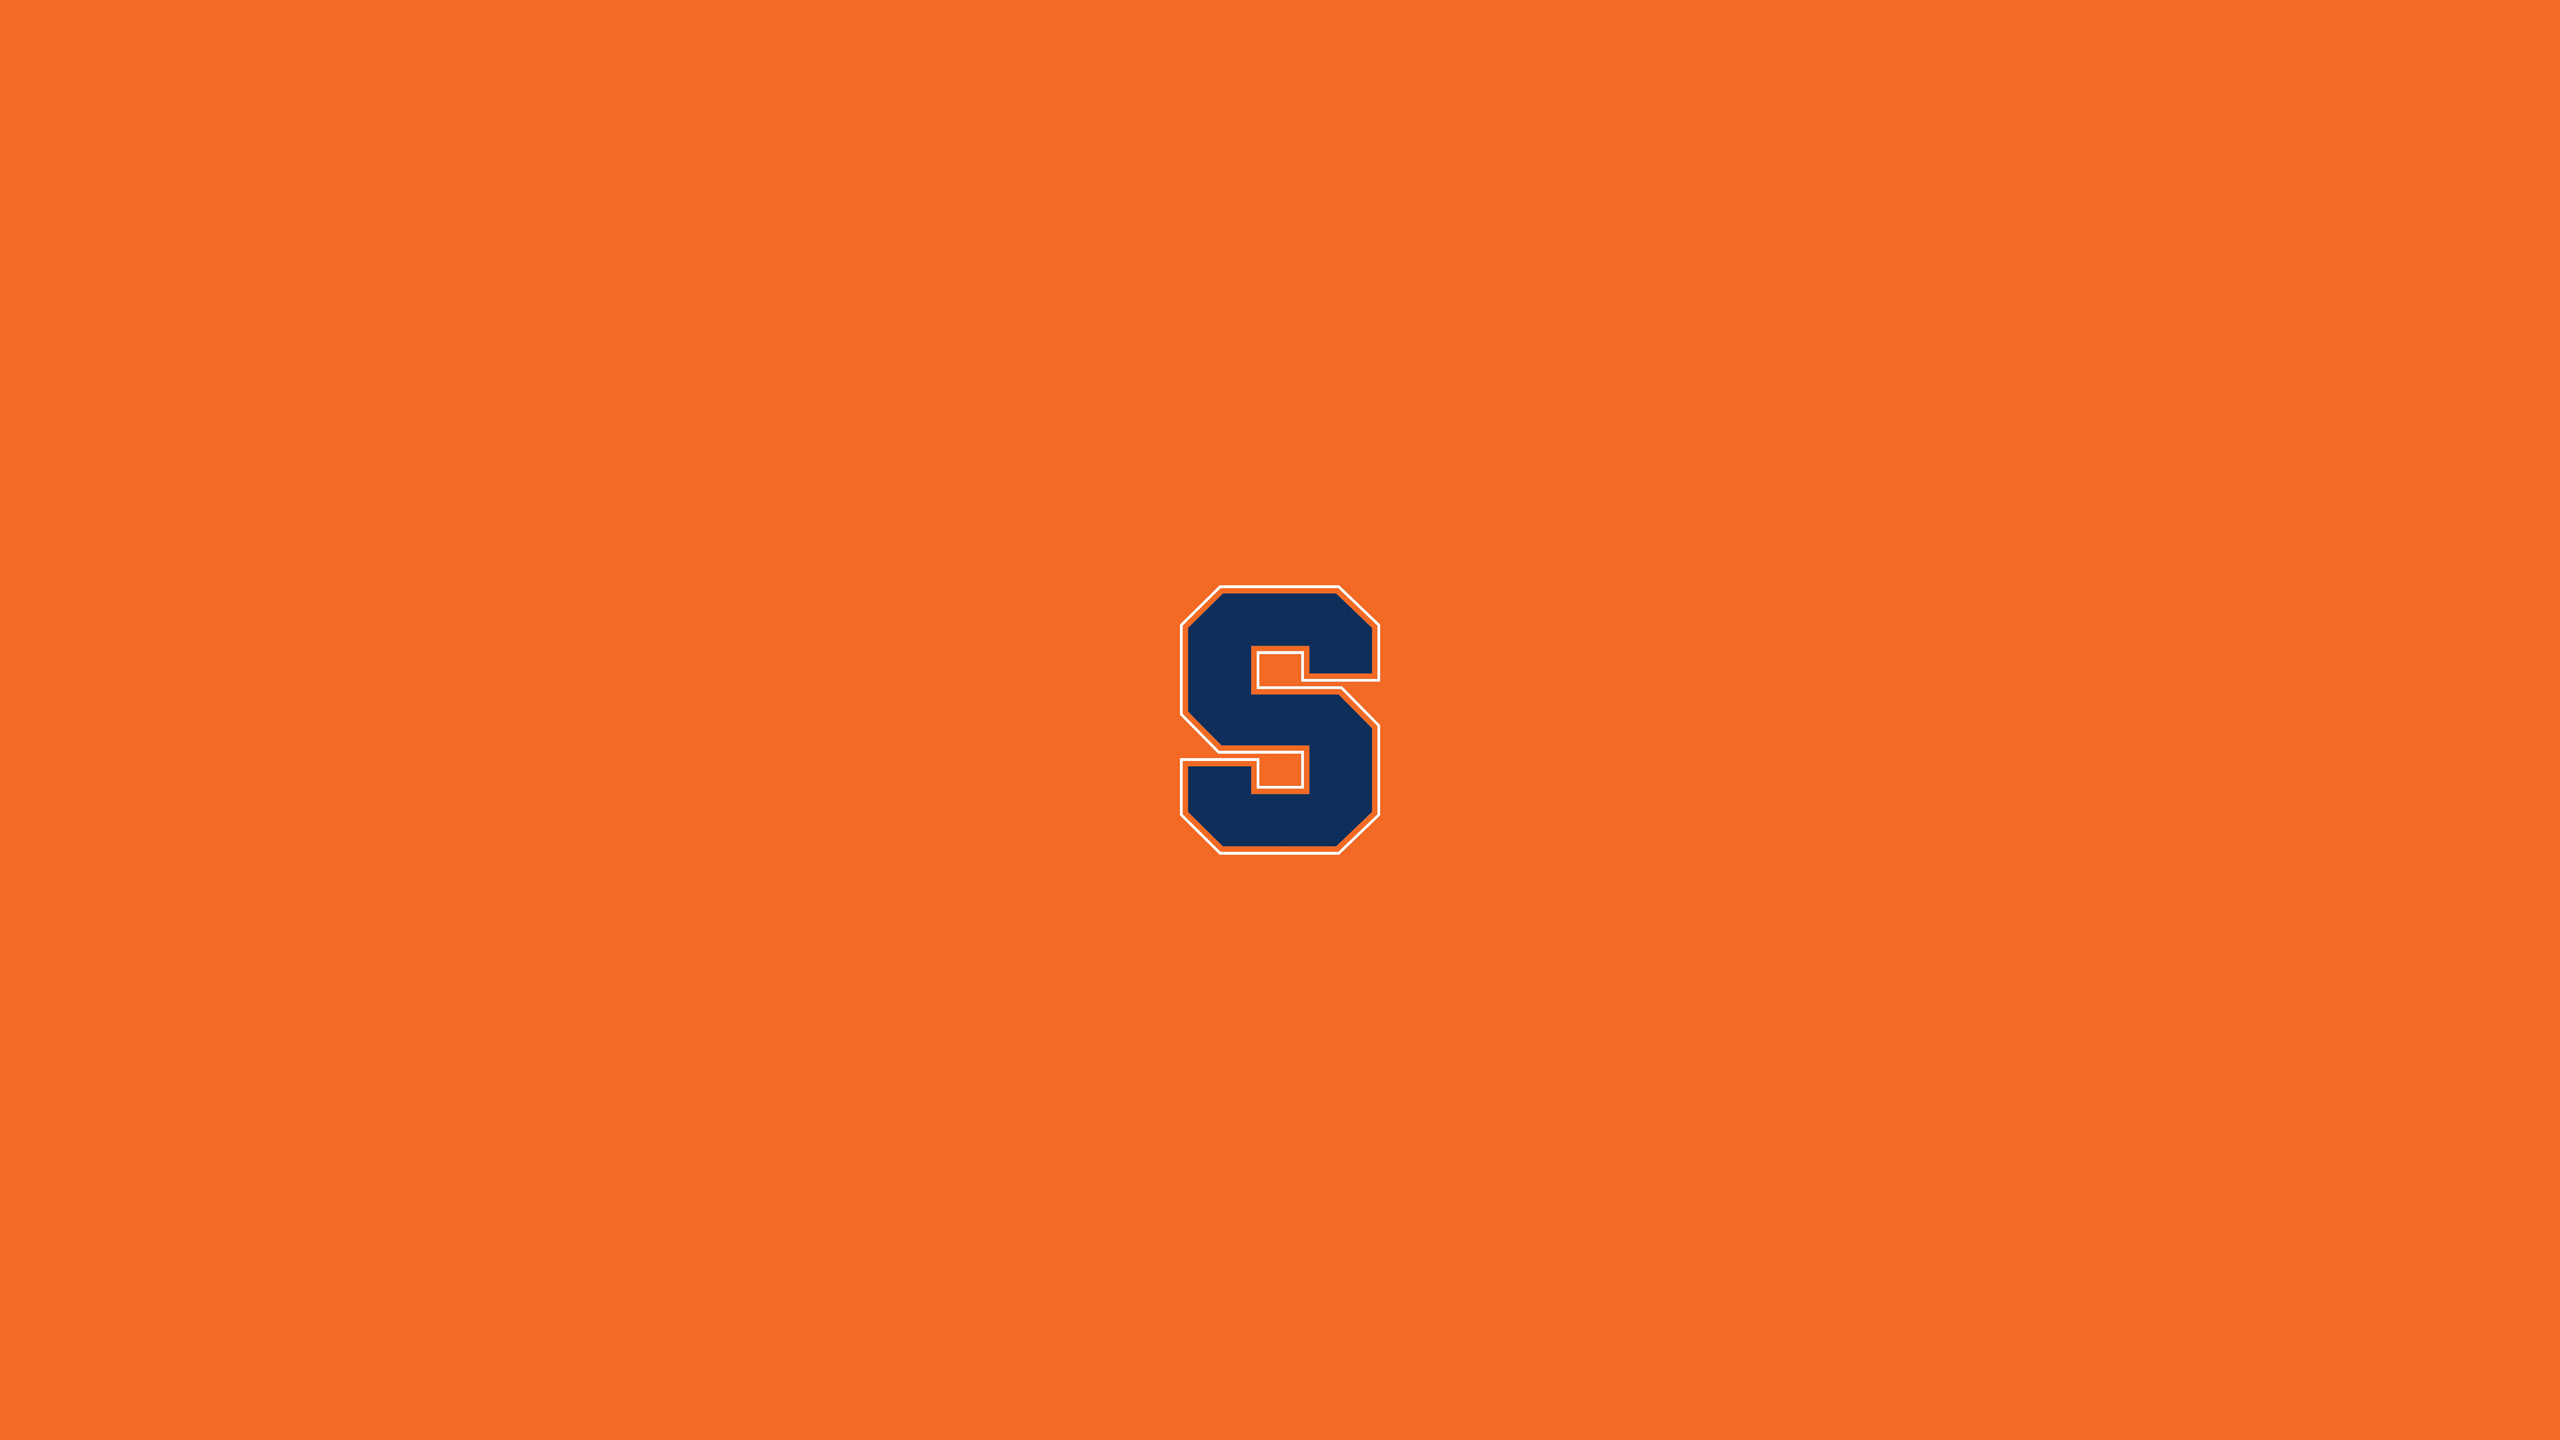 Syracuse Basketball Wallpapers 11jpg Pictures 2560x1440